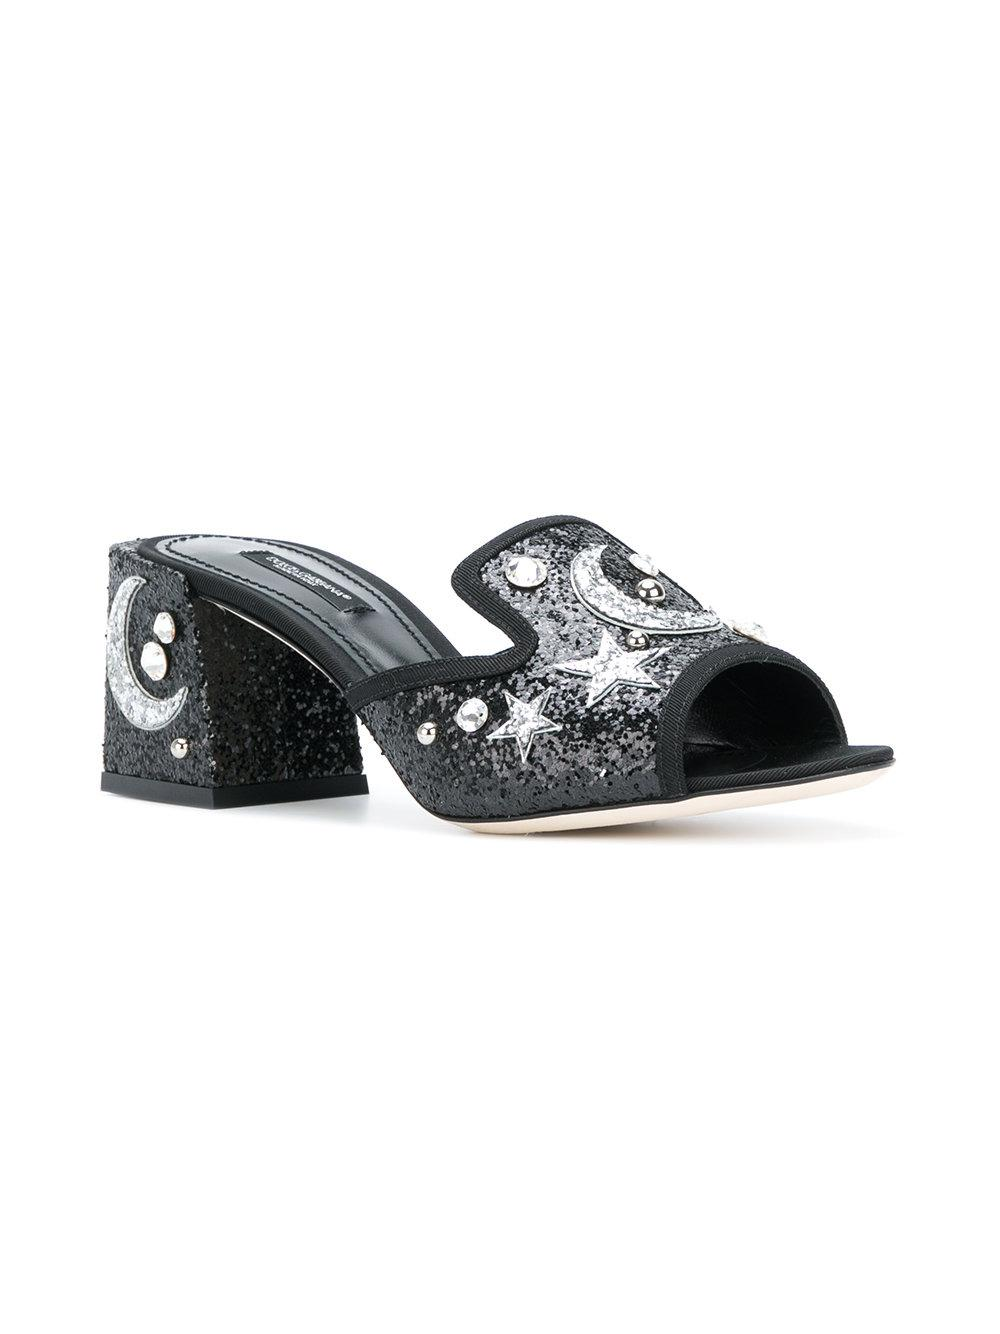 726d925ad7b7a Dolce & Gabbana Star & Moon Embellished Mules in Black - Lyst